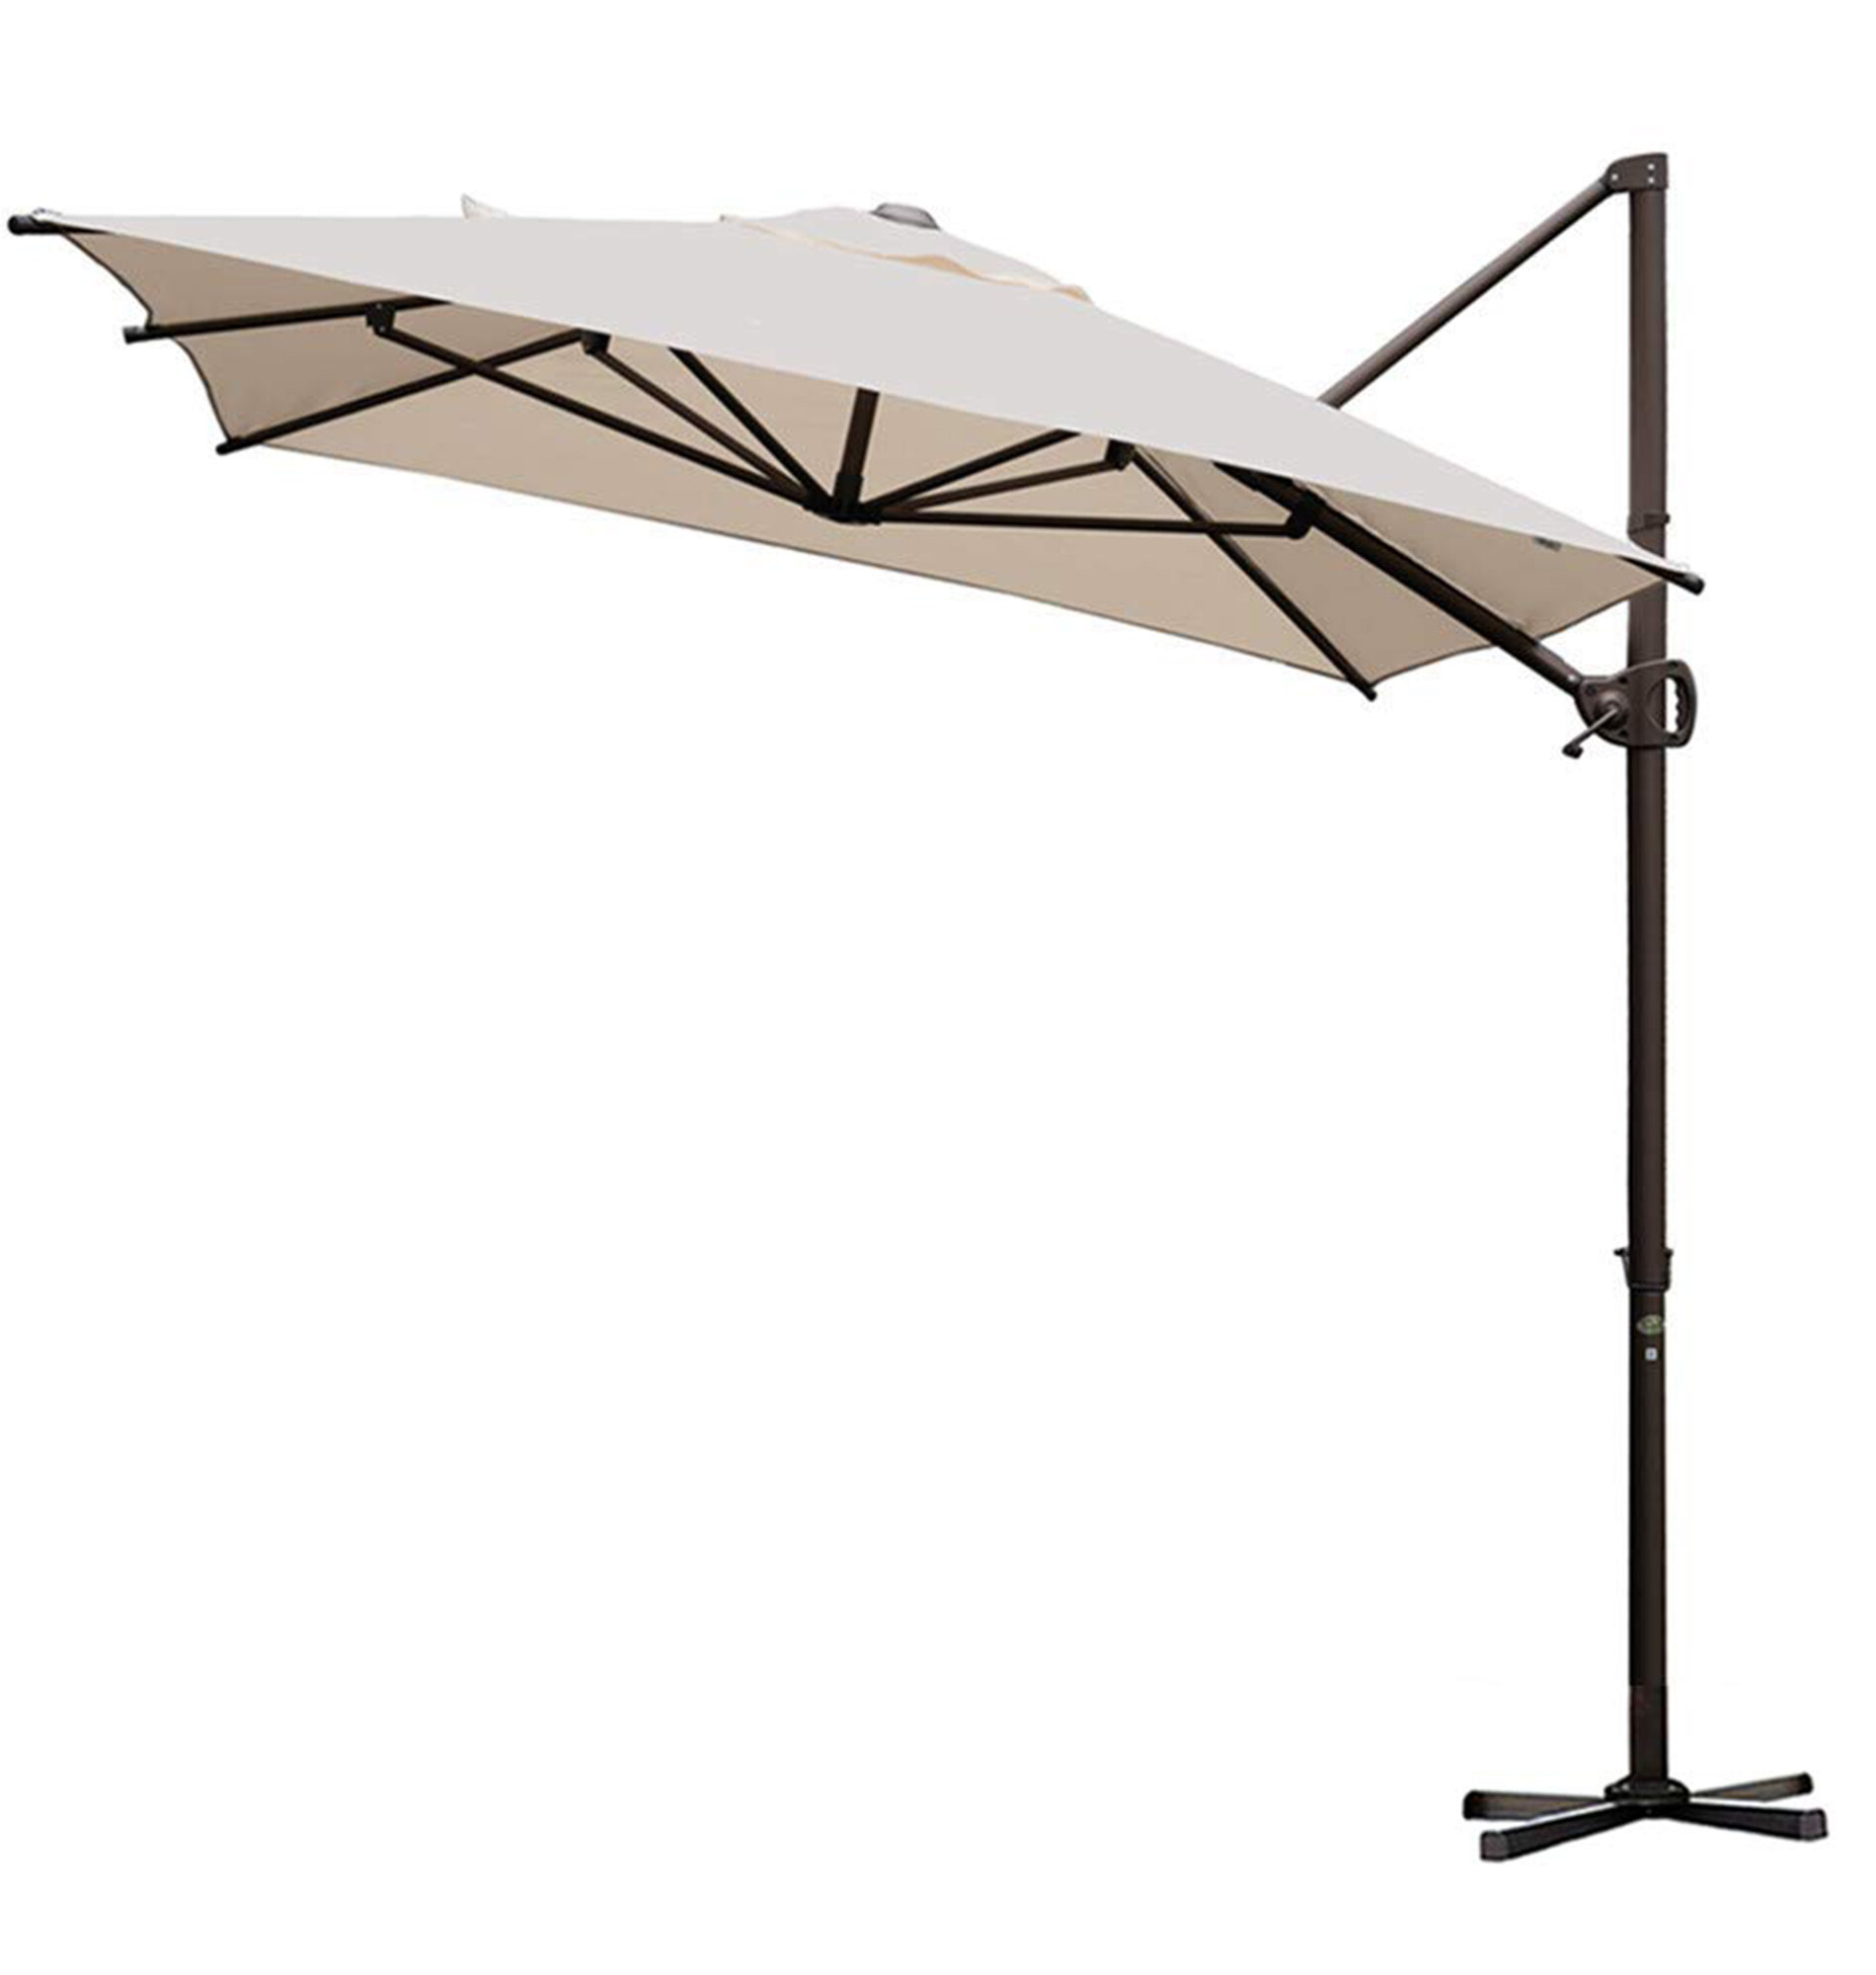 Widely Used Judah Cantilever Umbrellas For Walter 9' X 7' Rectangular Cantilever Umbrella (View 4 of 20)